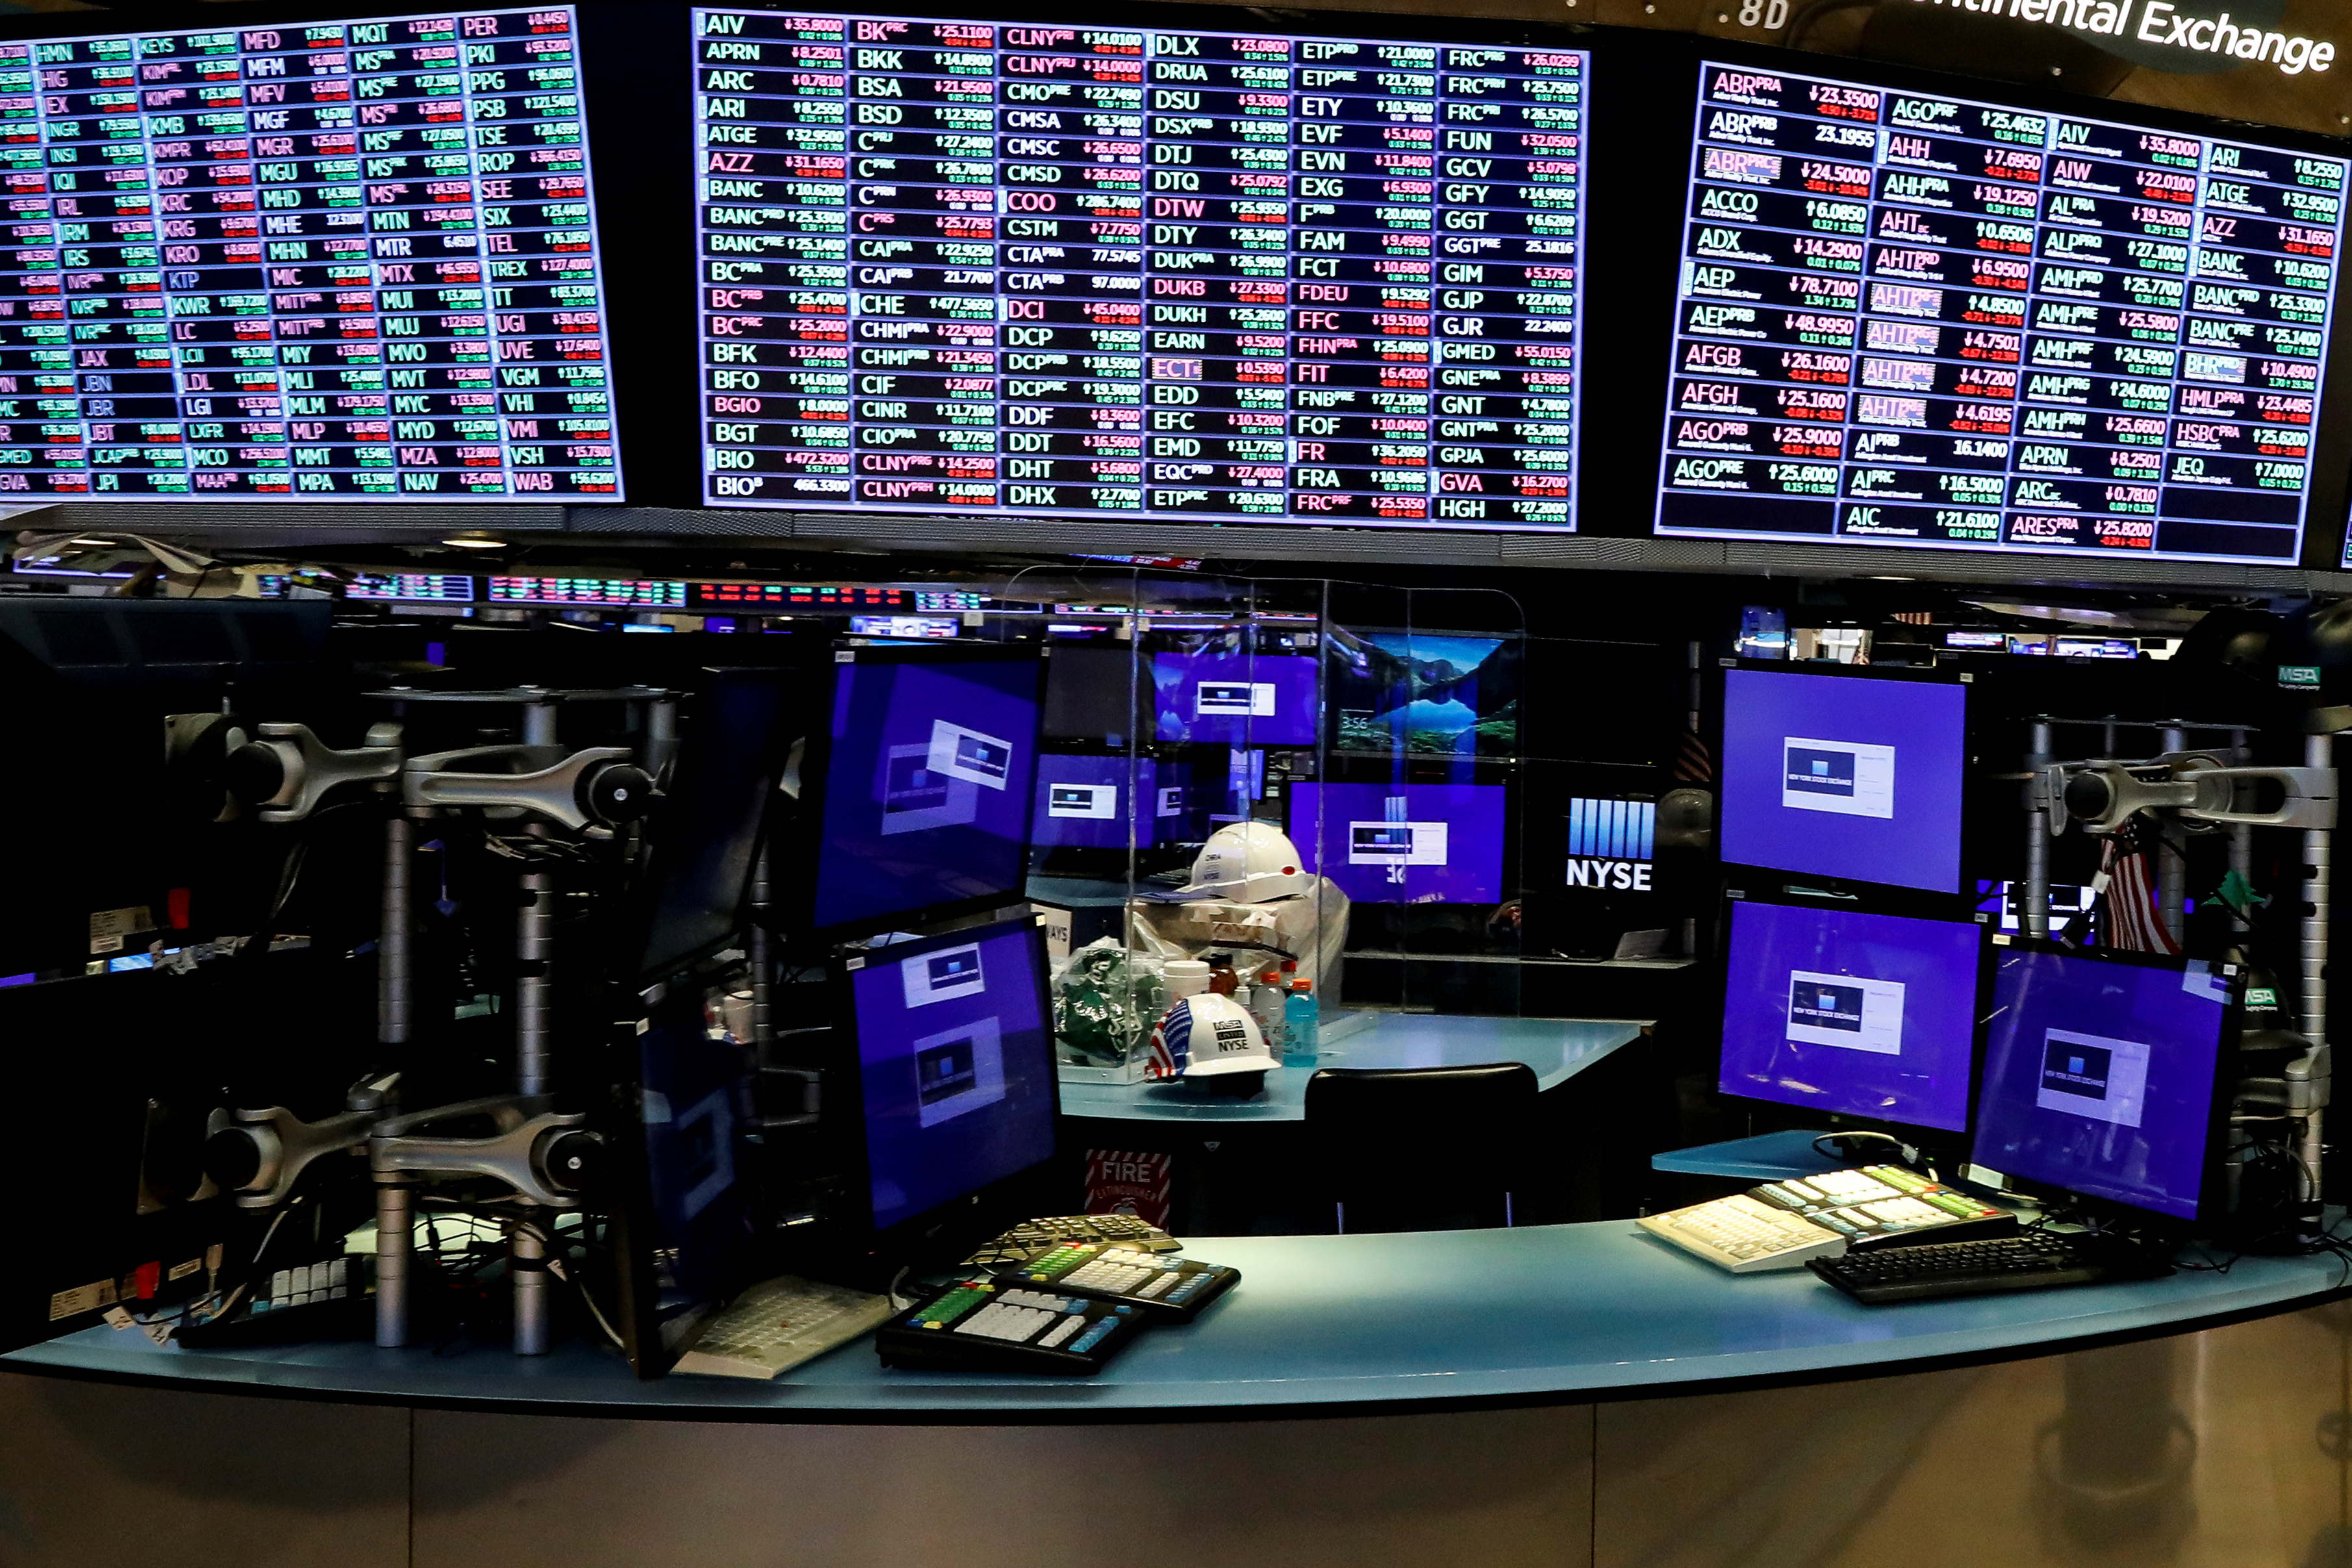 Dividers are seen inside a trading post on the trading floor as preparations are made for the return to trading at the New York Stock Exchange (NYSE) in New York, U.S., May 22, 2020. REUTERS/Brendan McDermid/File Photo